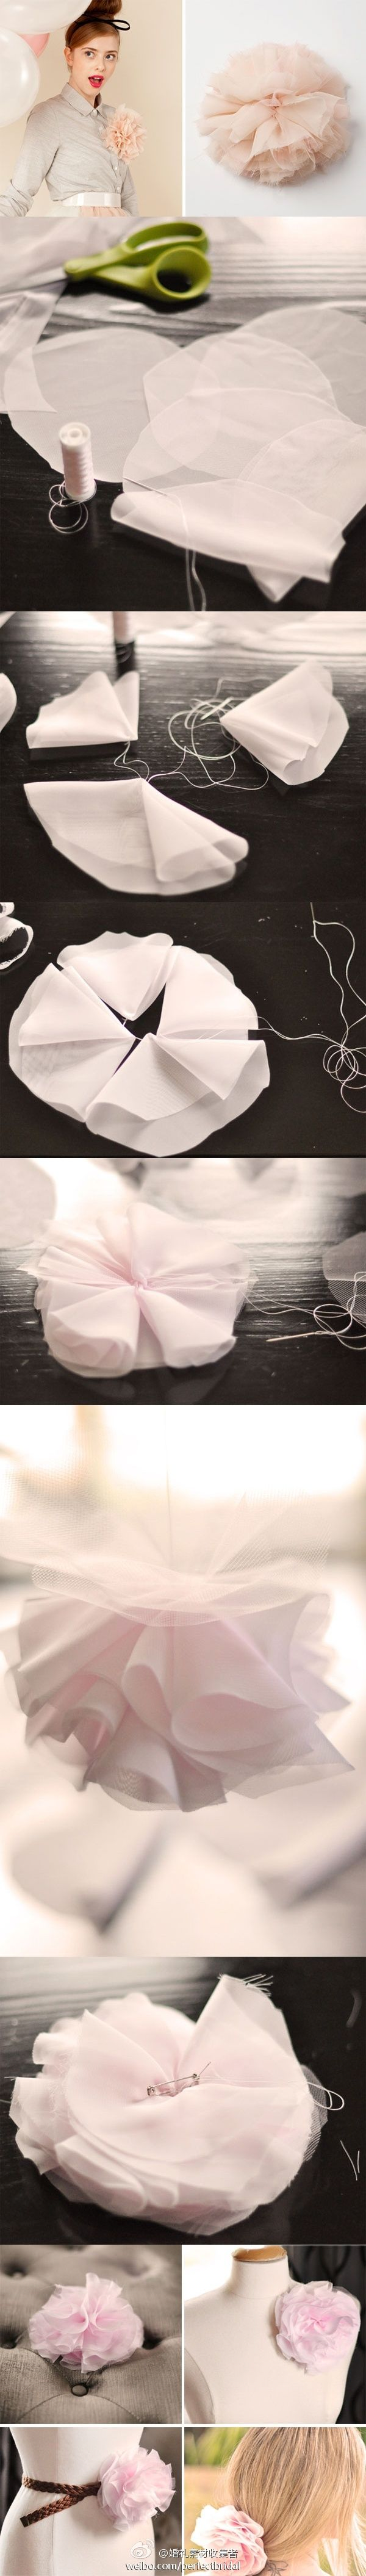 Inspirational Monday – Do it yourself (diy) Flower series – DIY Bridal Flower…